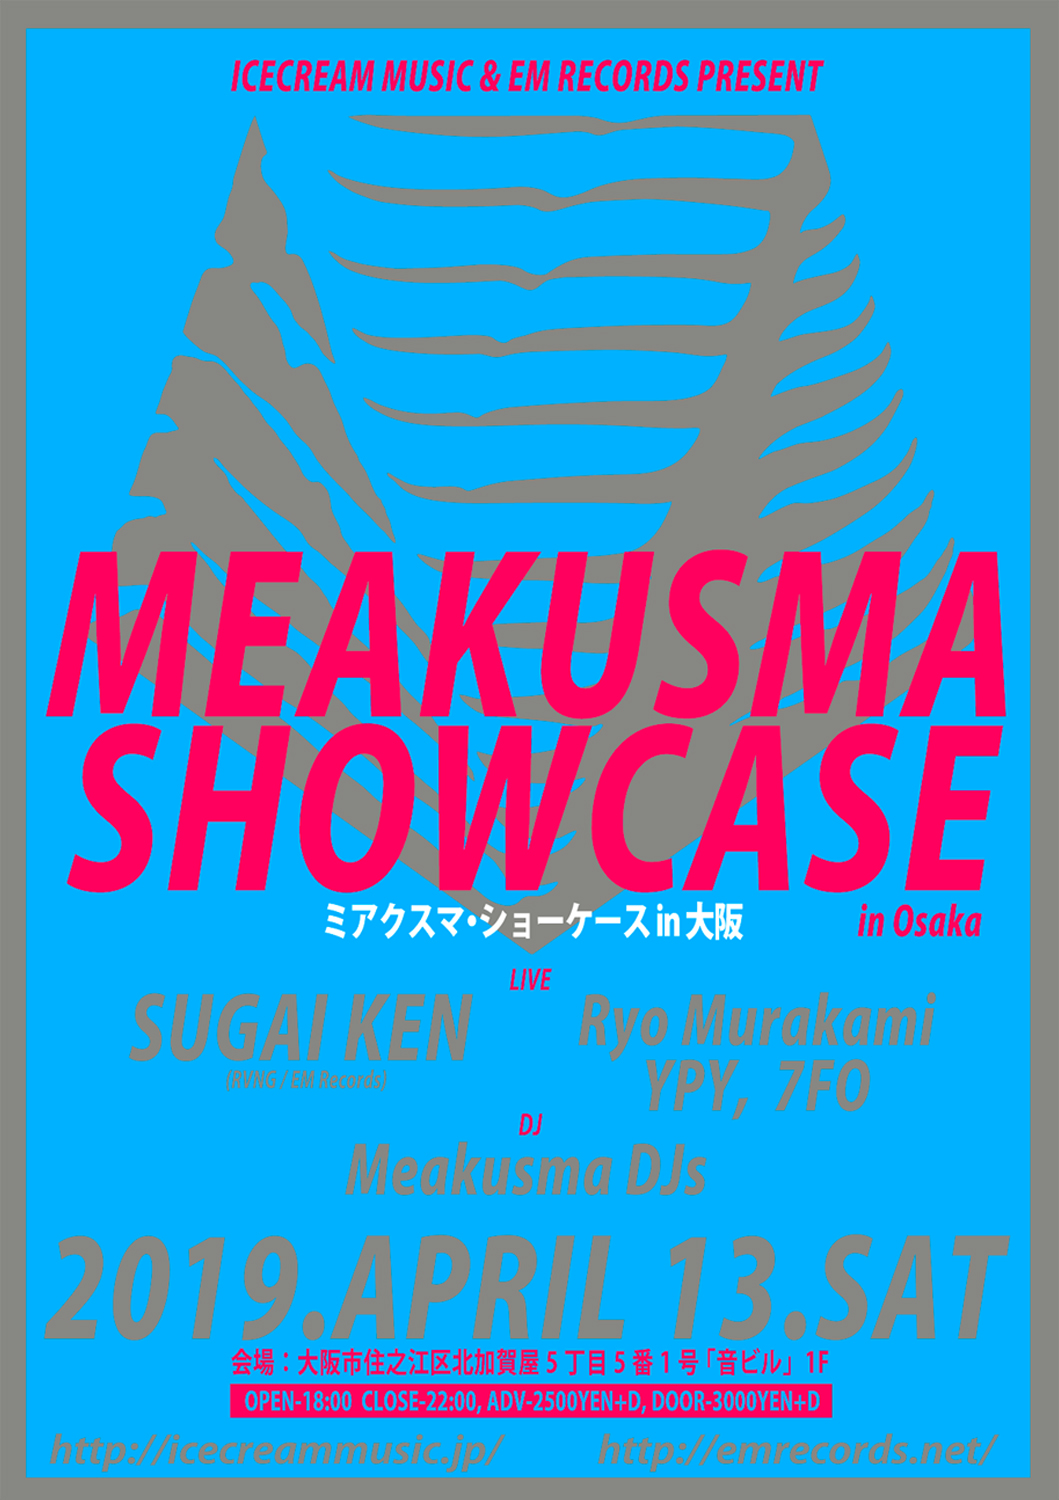 meakusma showcase